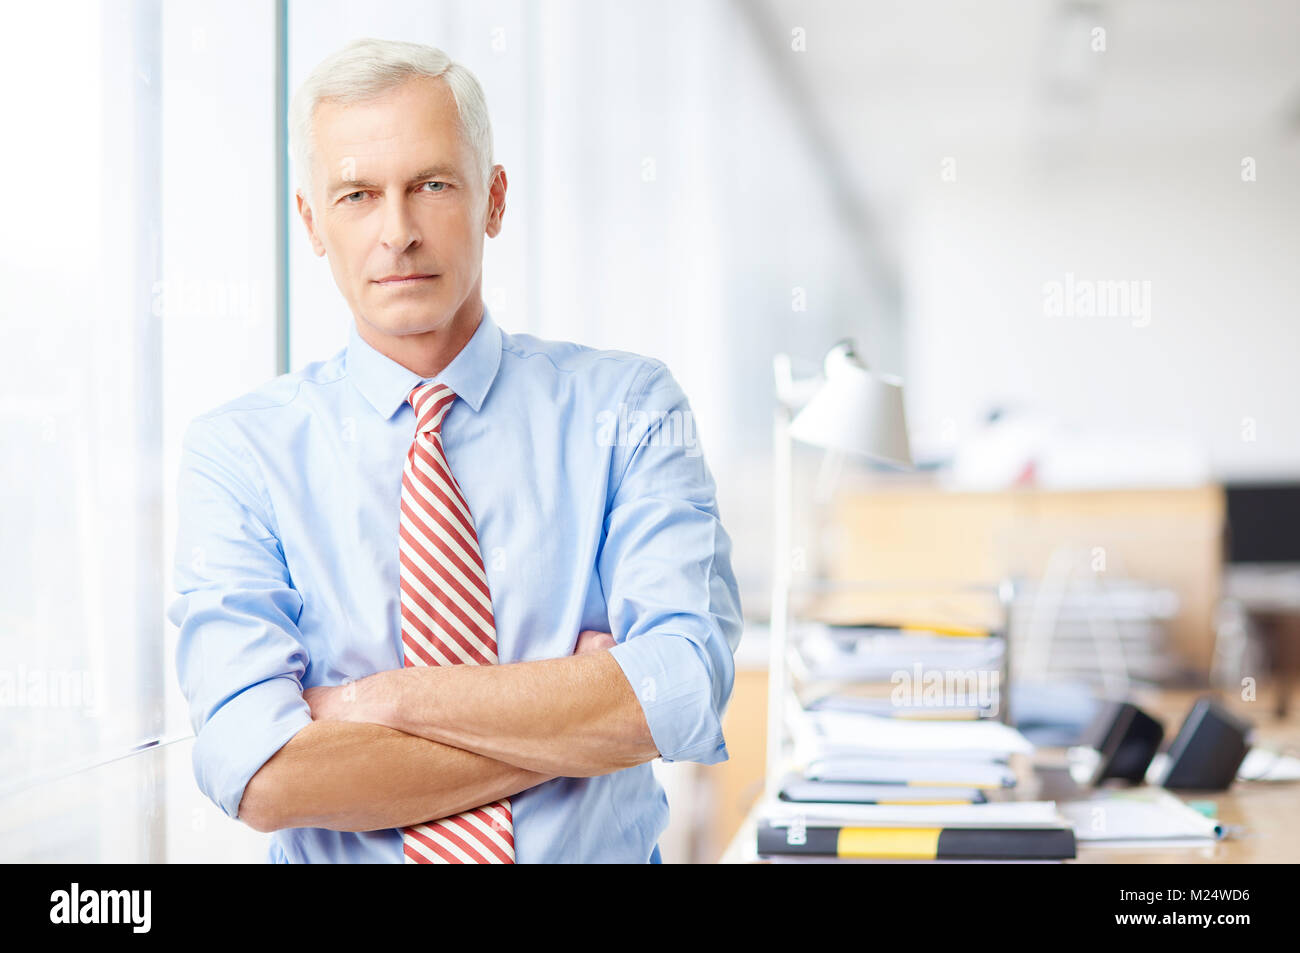 An executive sales manager standing with arms crossed at the office and looking at camera. - Stock Image